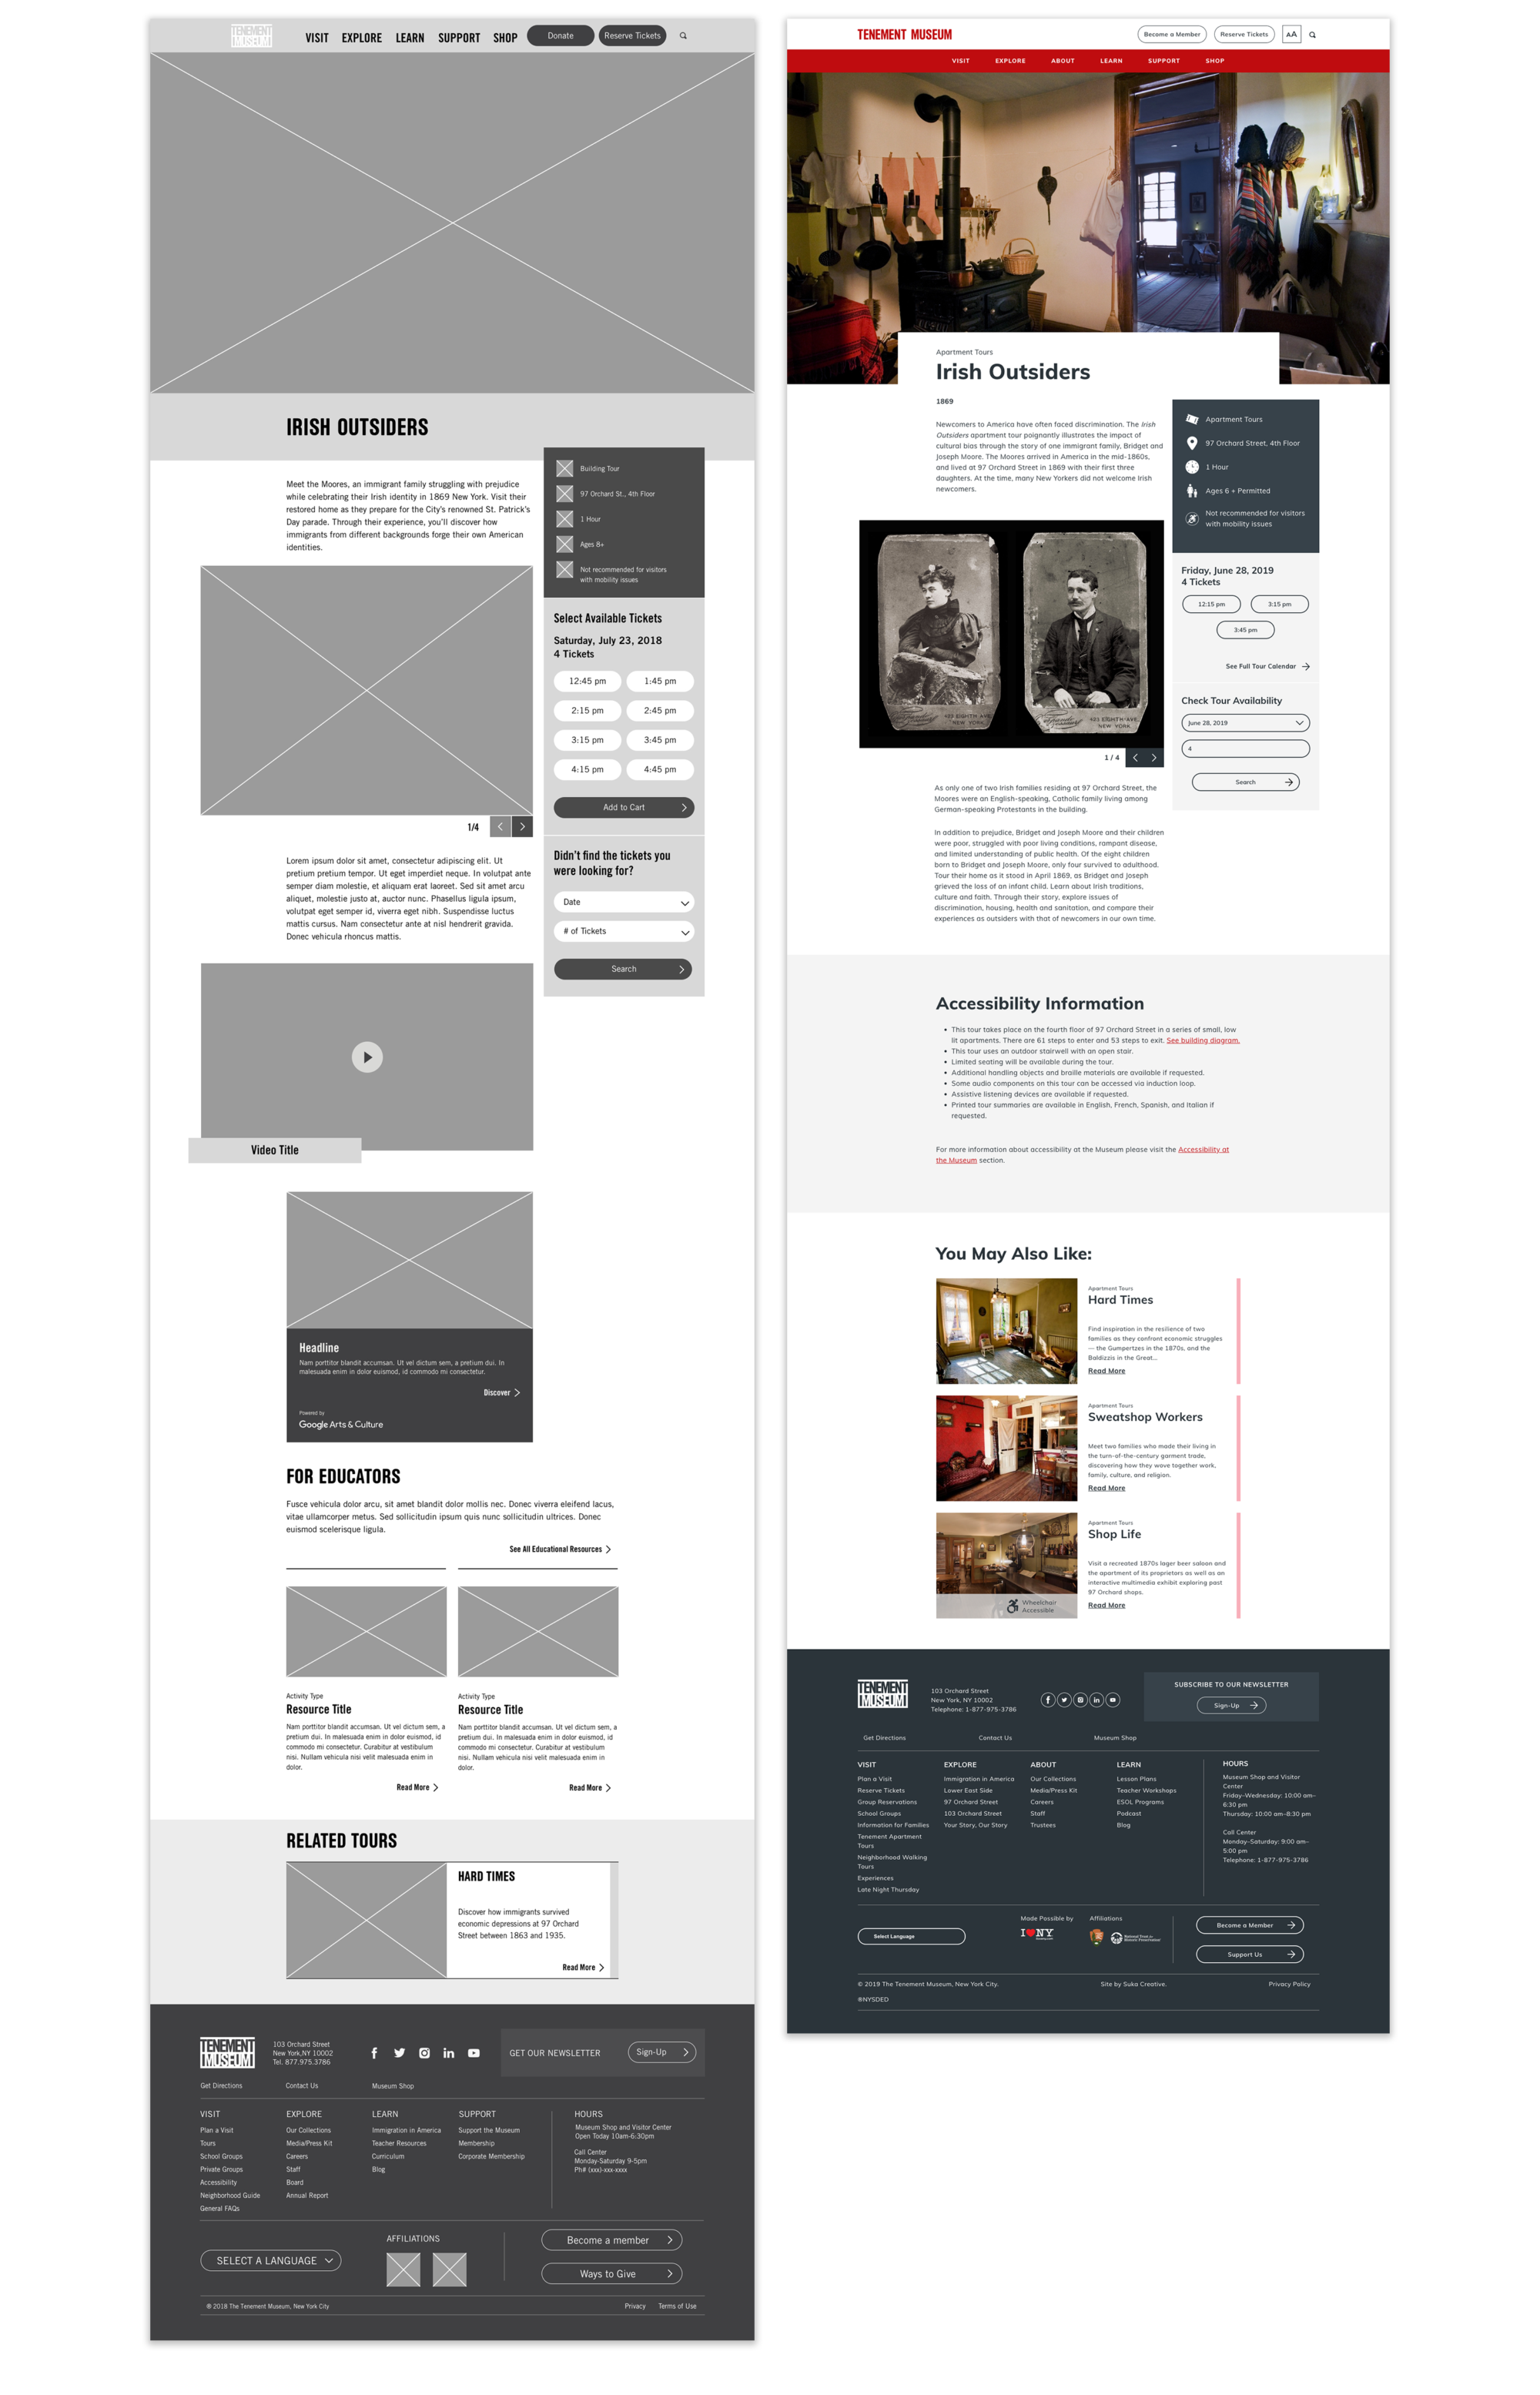 Comparison between wireframe and visual design for one of the Tenement Museum's new tour pages.